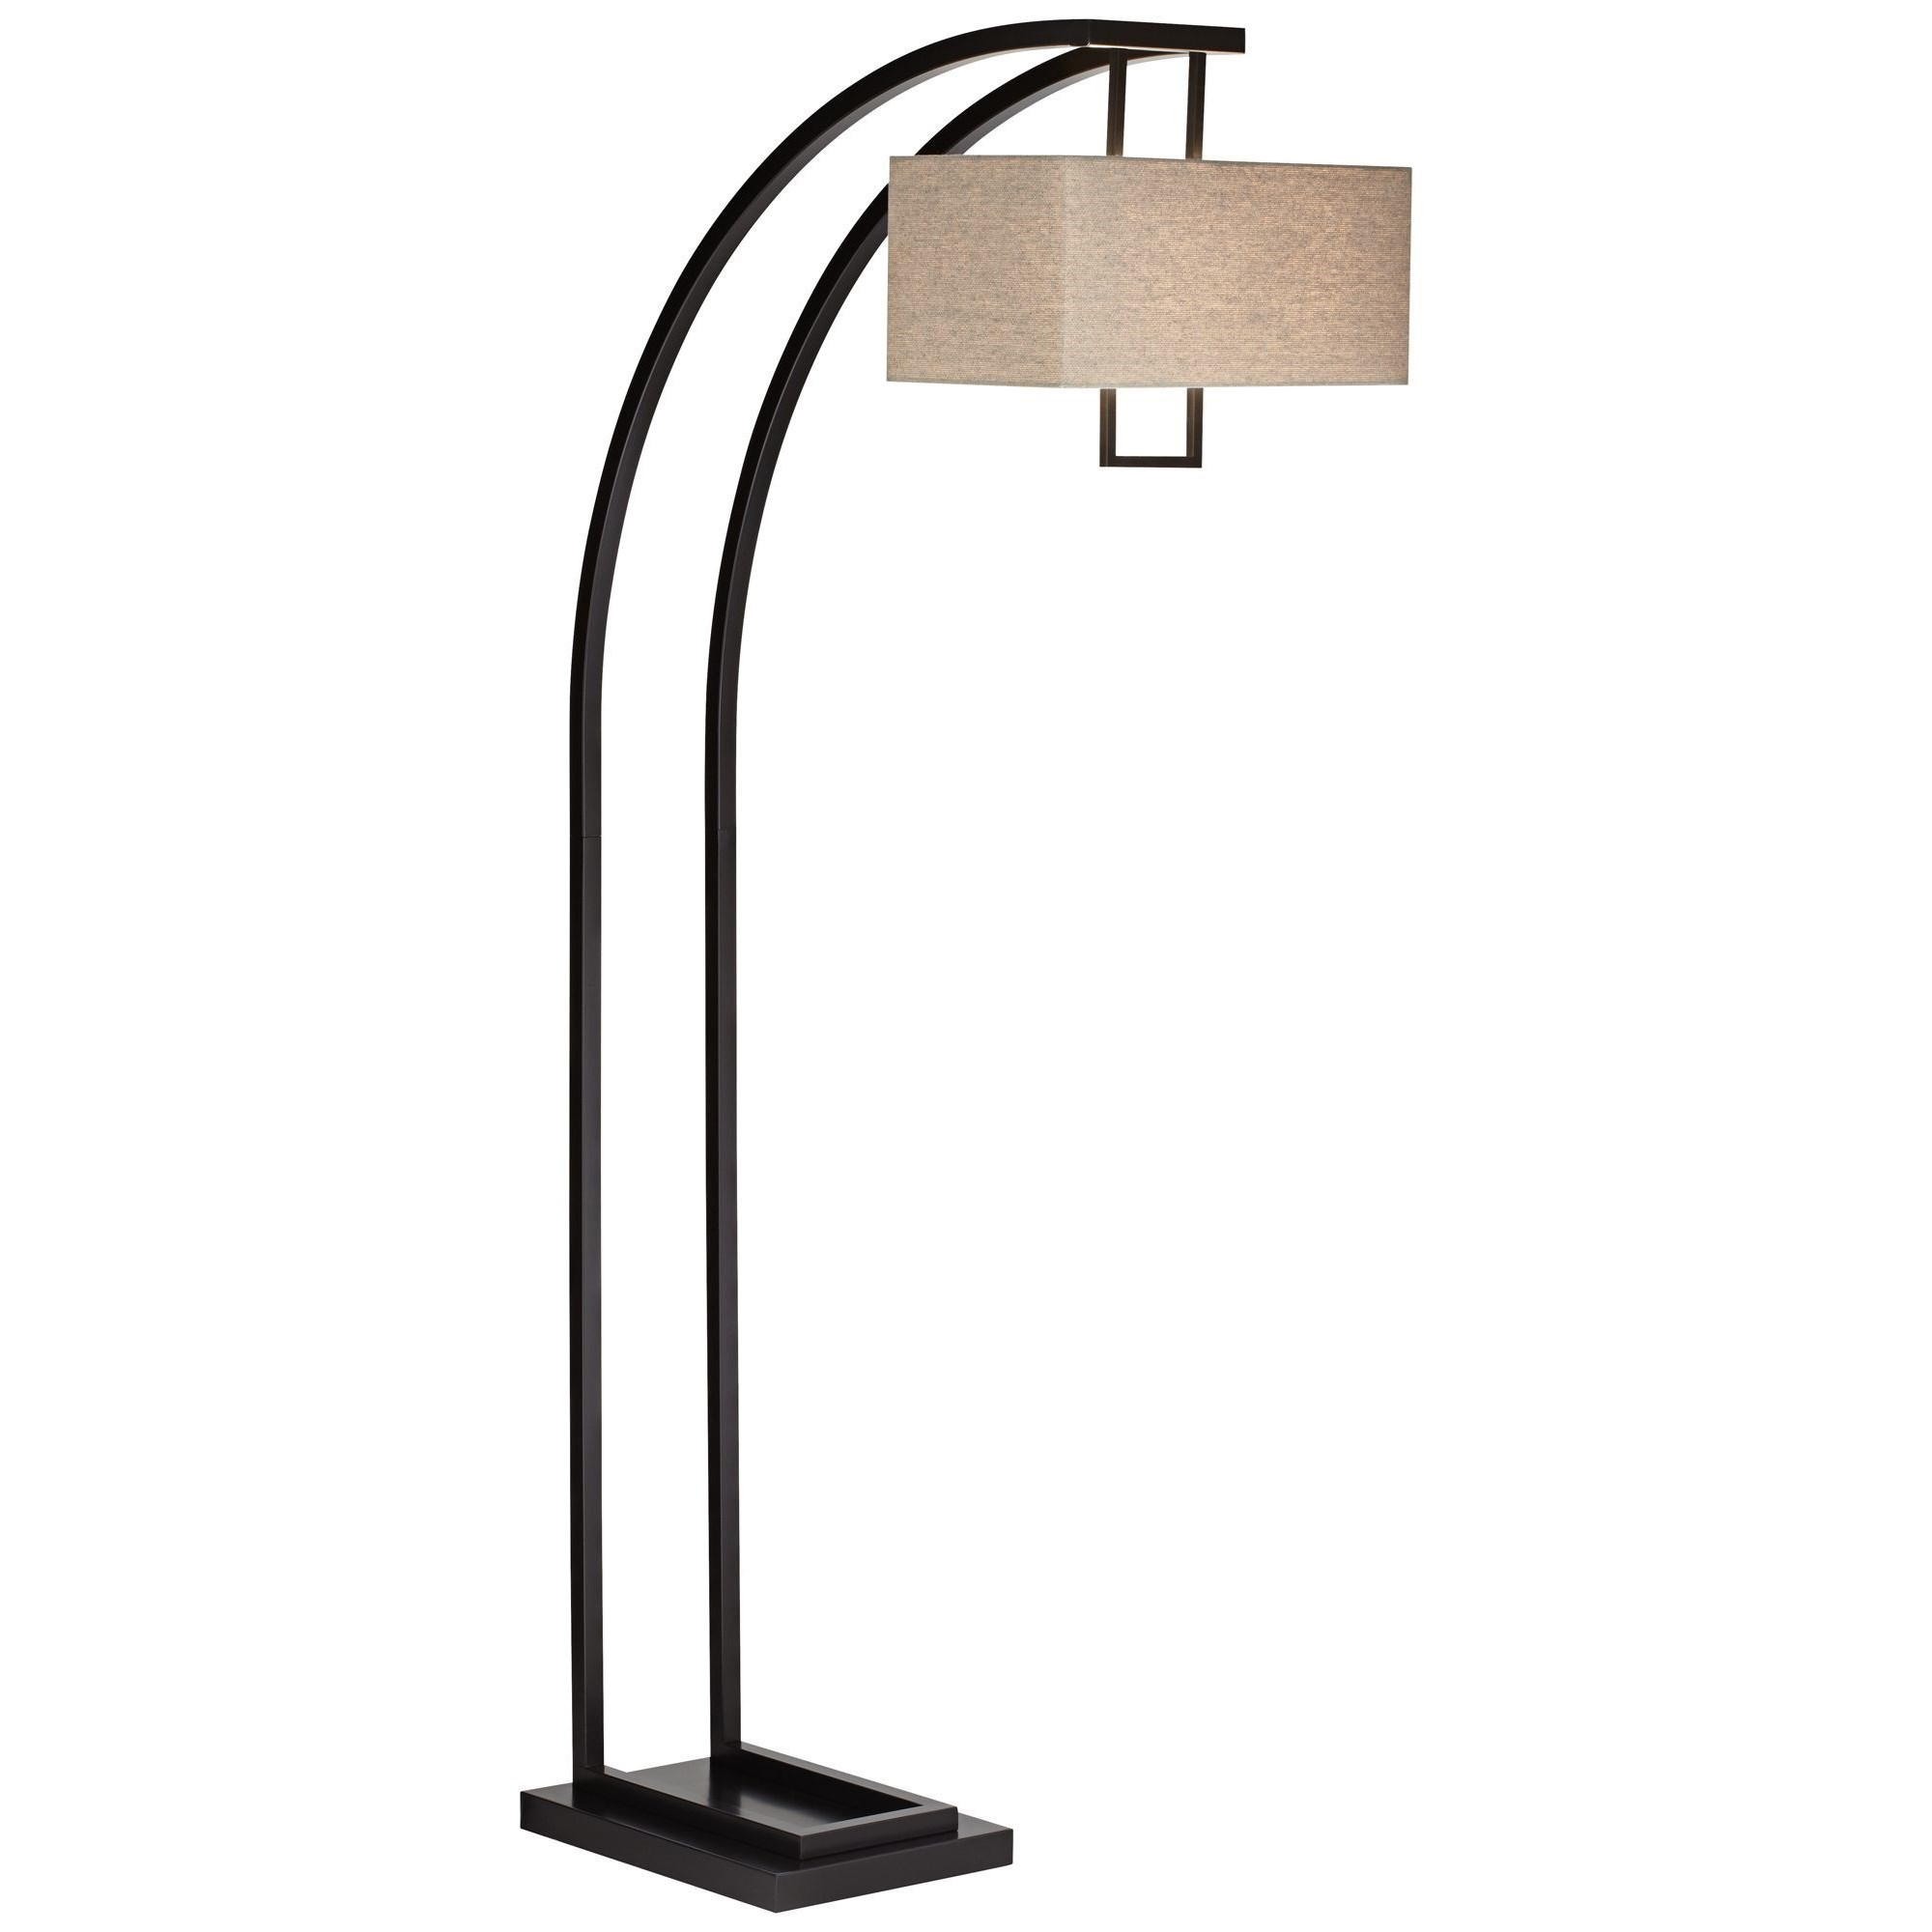 PCL FLOOR LAMPS Aiden Place Arc Floor Lamp by PCL LIGHTING at Walker's Furniture